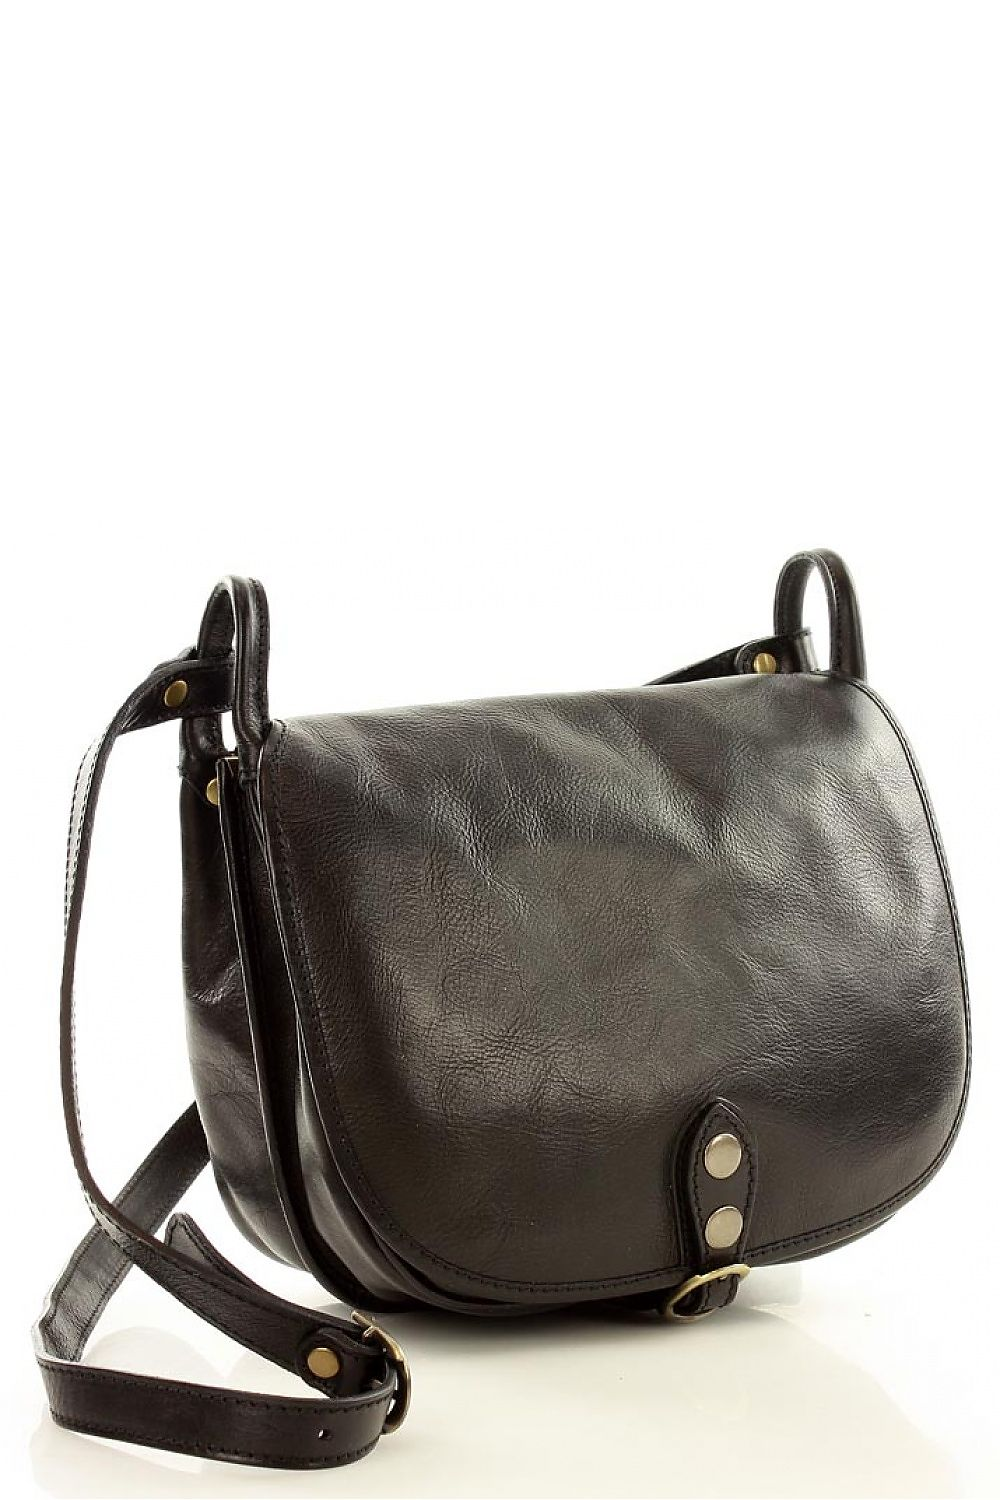 Cuir Naturel Gros Model Vera Pelle En Vêtements Vente Sac 119873 35ARqj4L